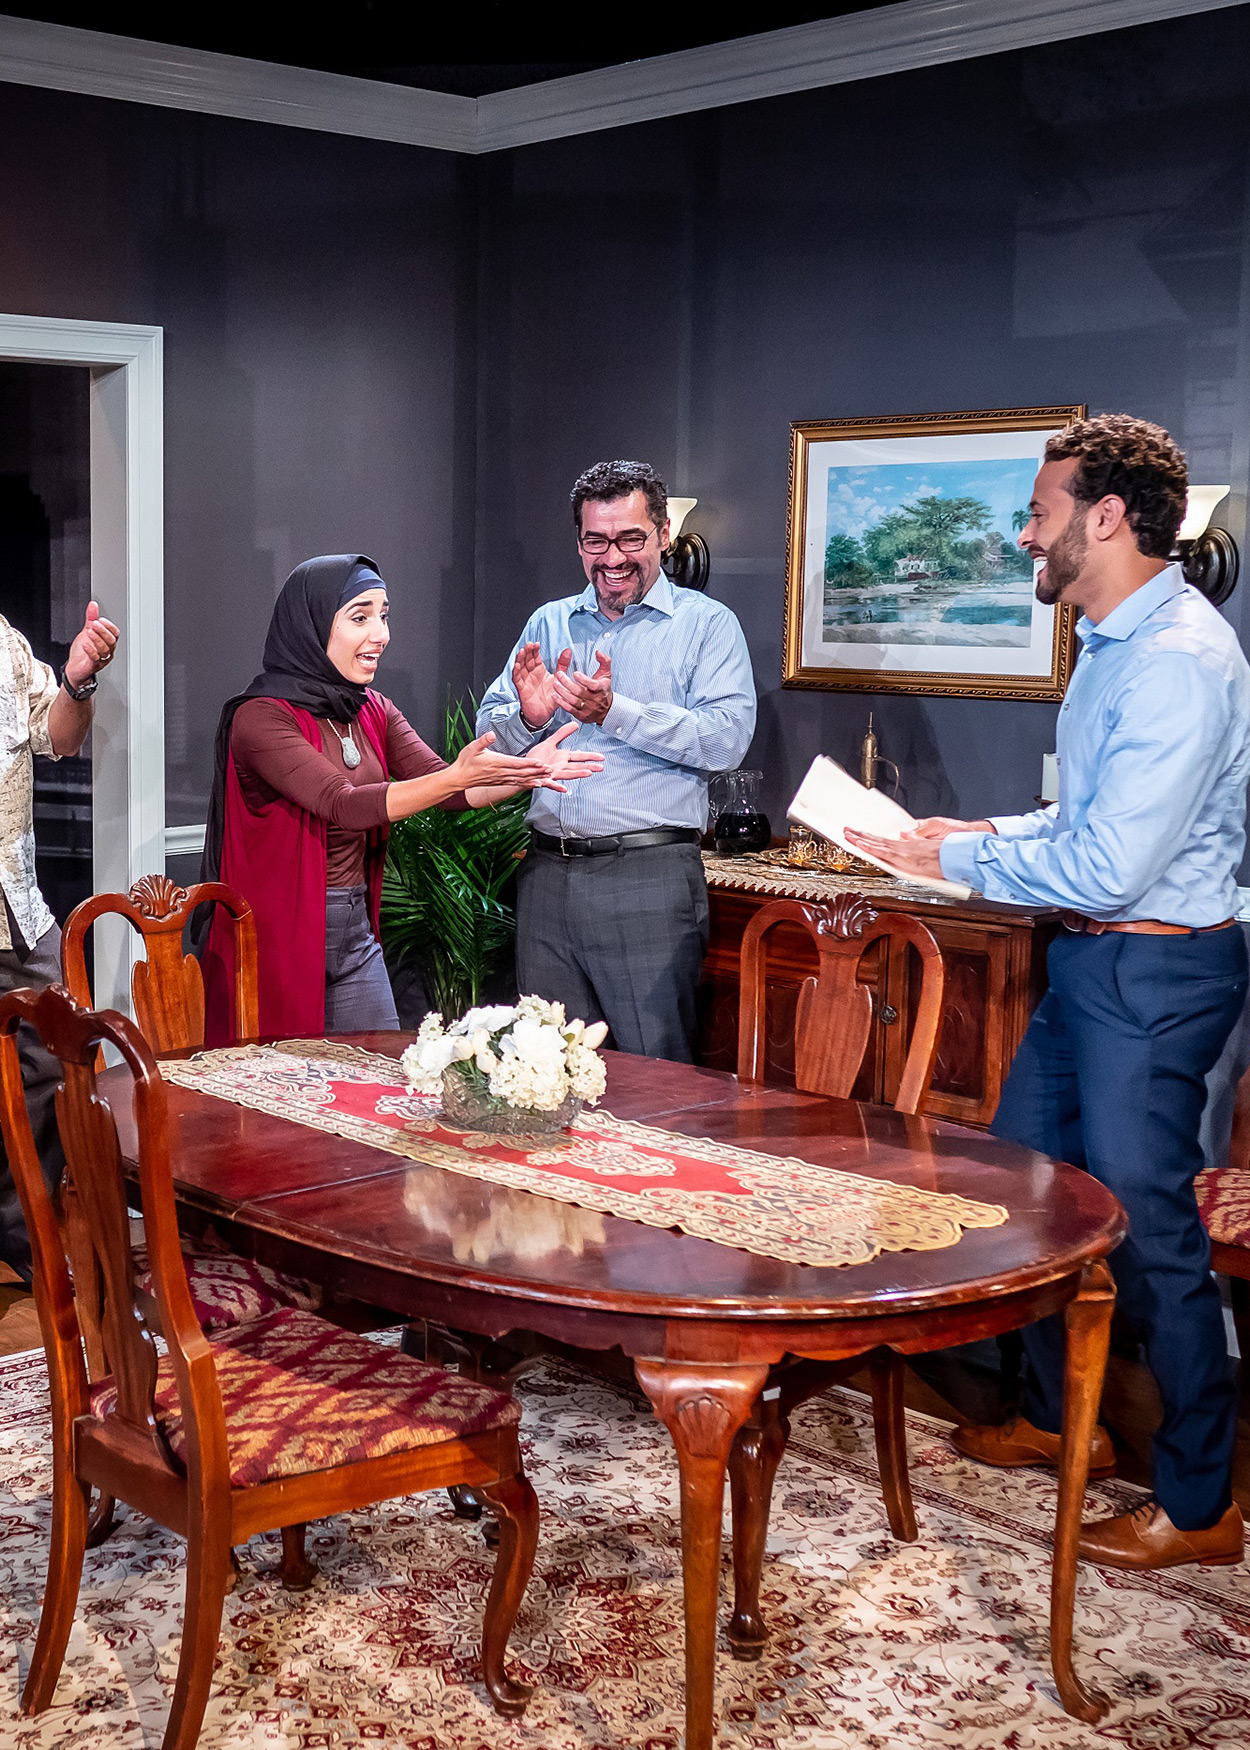 Production Photo from Yasmina's Necklace (2019). Four men and two women stand around a dining room table. Both women are wearing hijabs. One man is handing the younger woman a piece of paper. Everyone present is very excited.